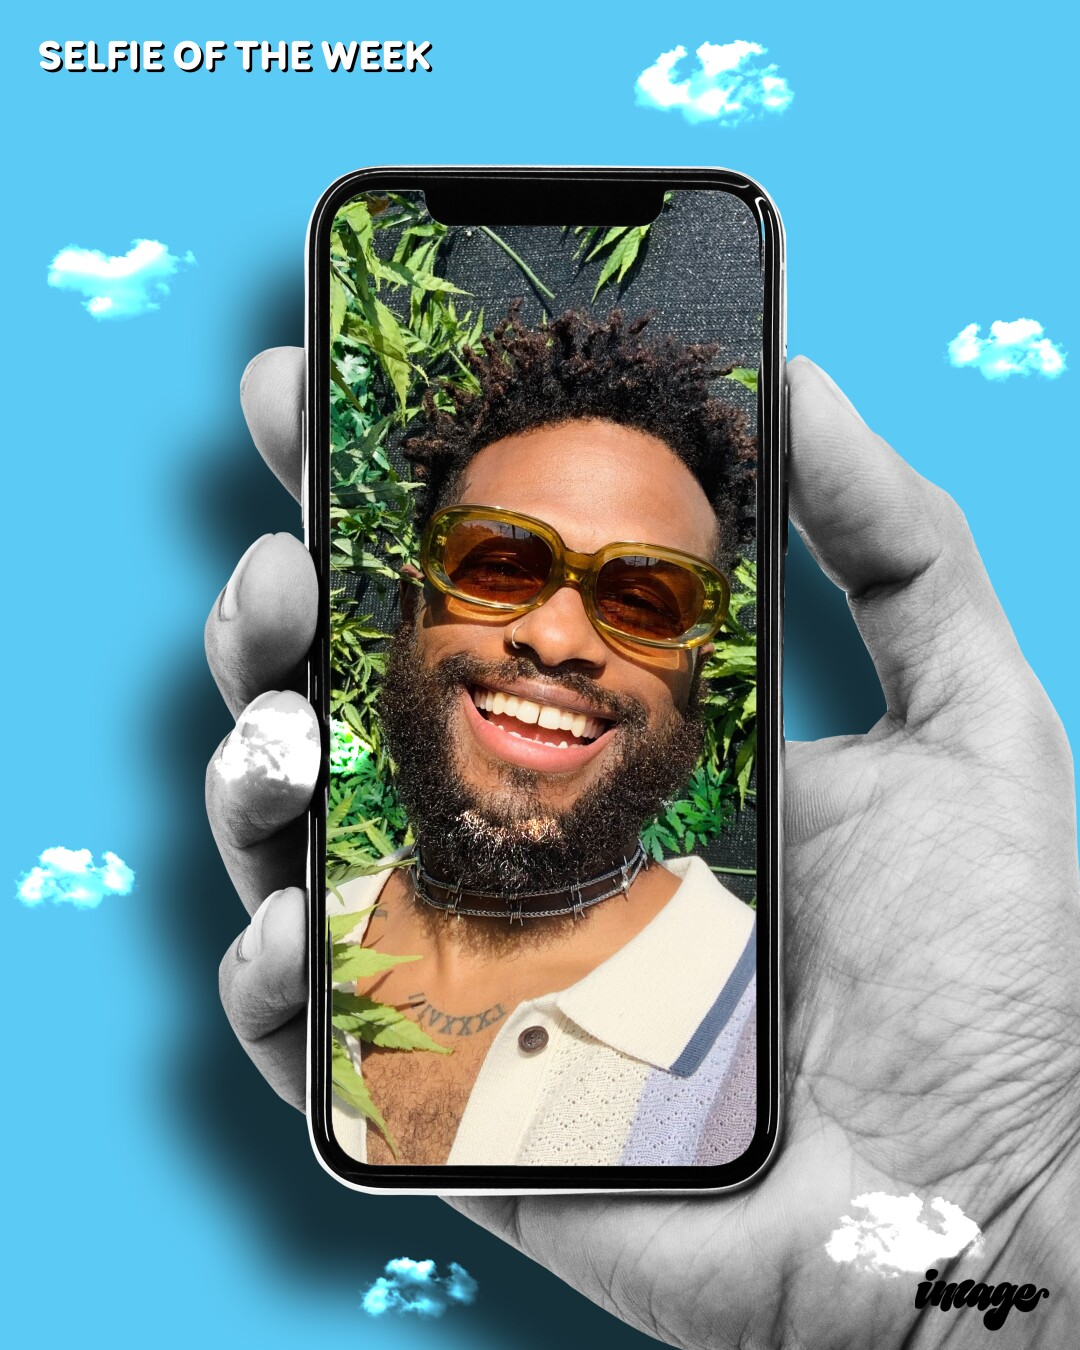 A hand holds a cellphone displaying a selfie of a smiling, bearded Black man in sunglasses.